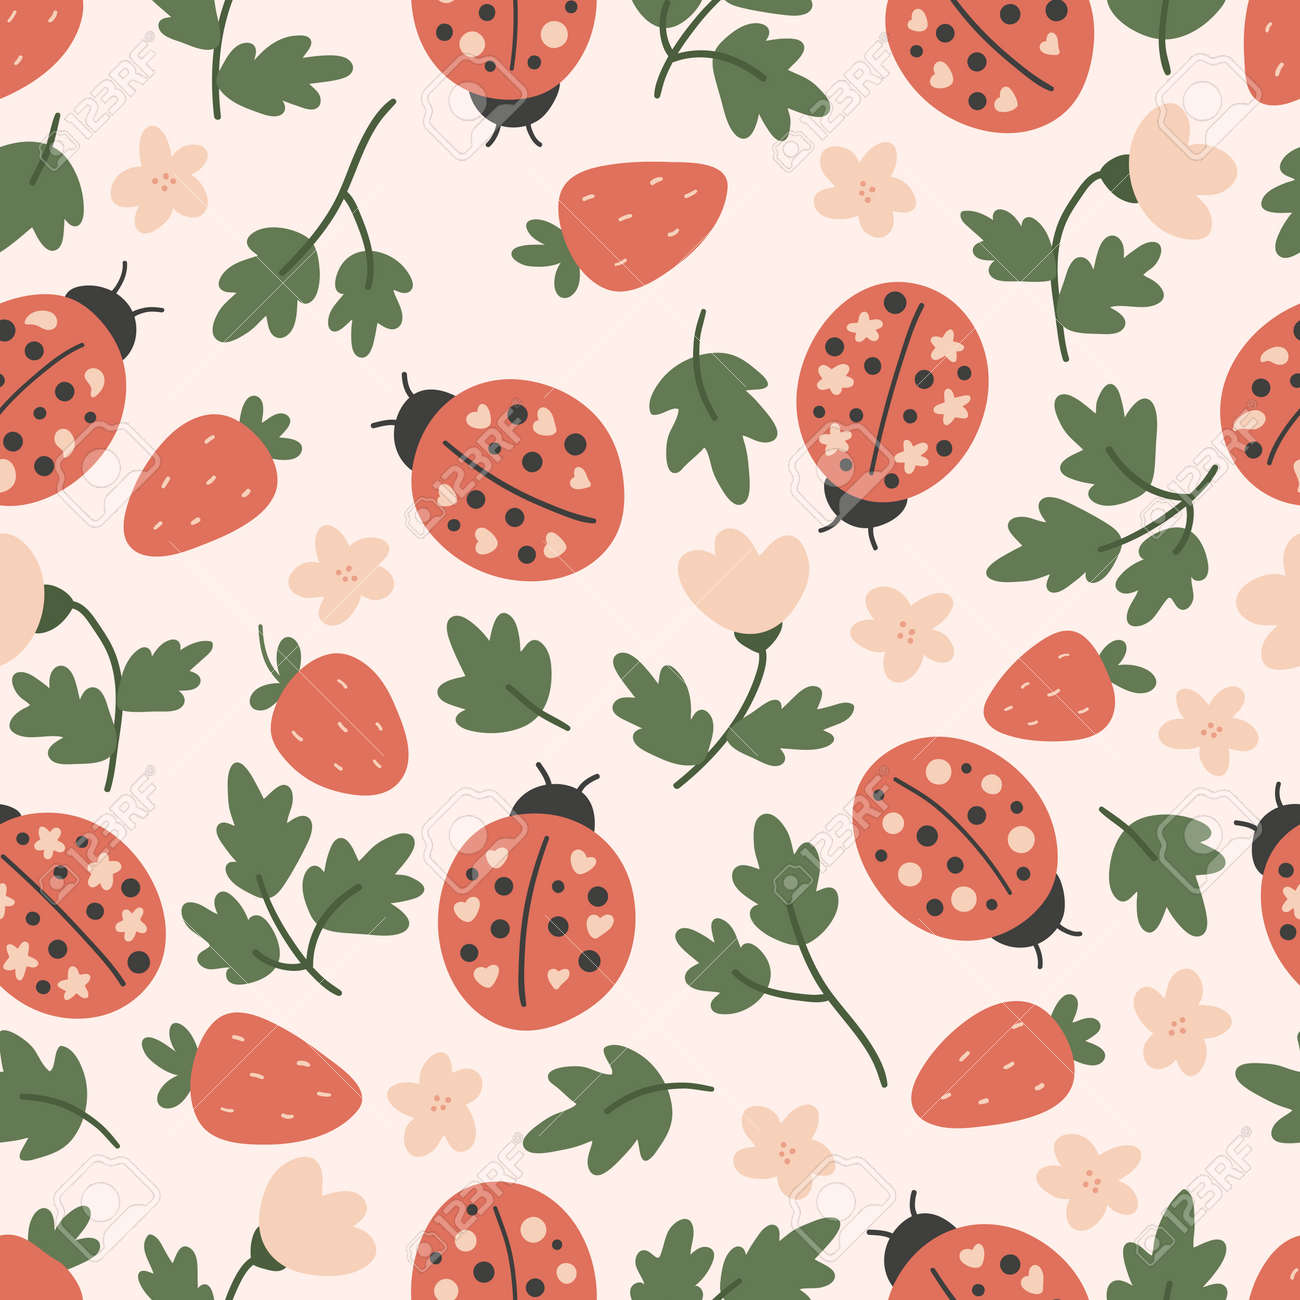 Hand drawn seamless pattern with ladybug and strawberry. Vector doodle plants and flowers. Stylized insects. - 166612311